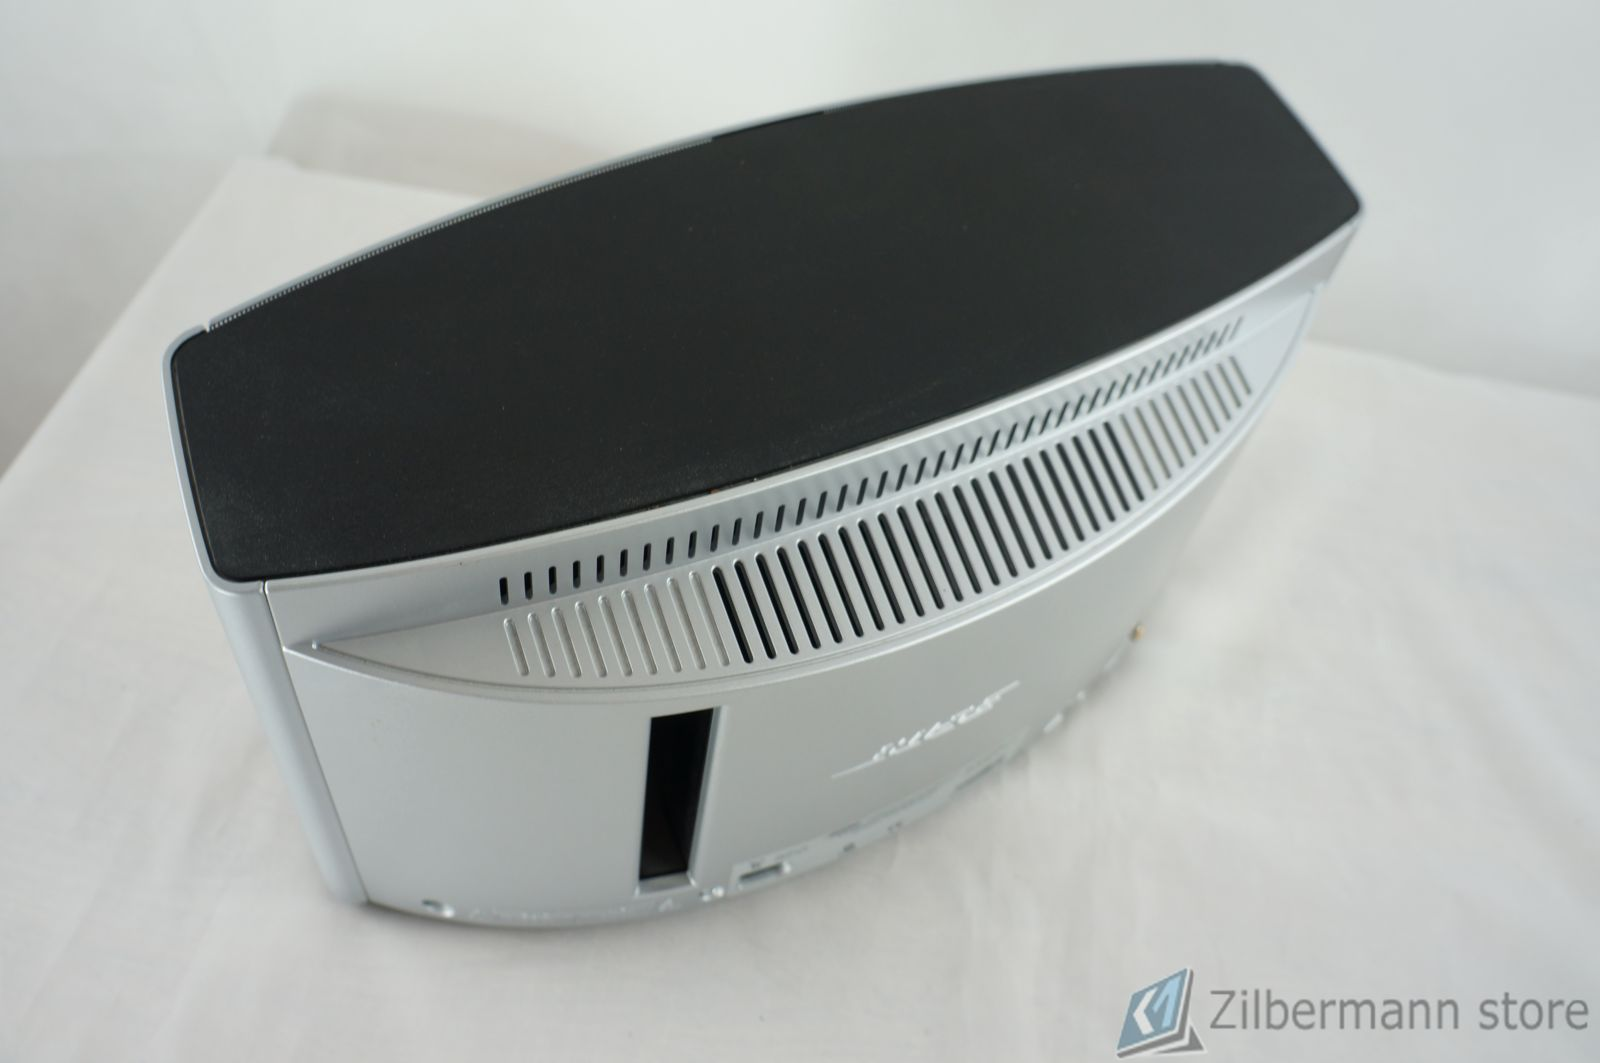 Bose_SoundDock_10_Digital_Music_System_06